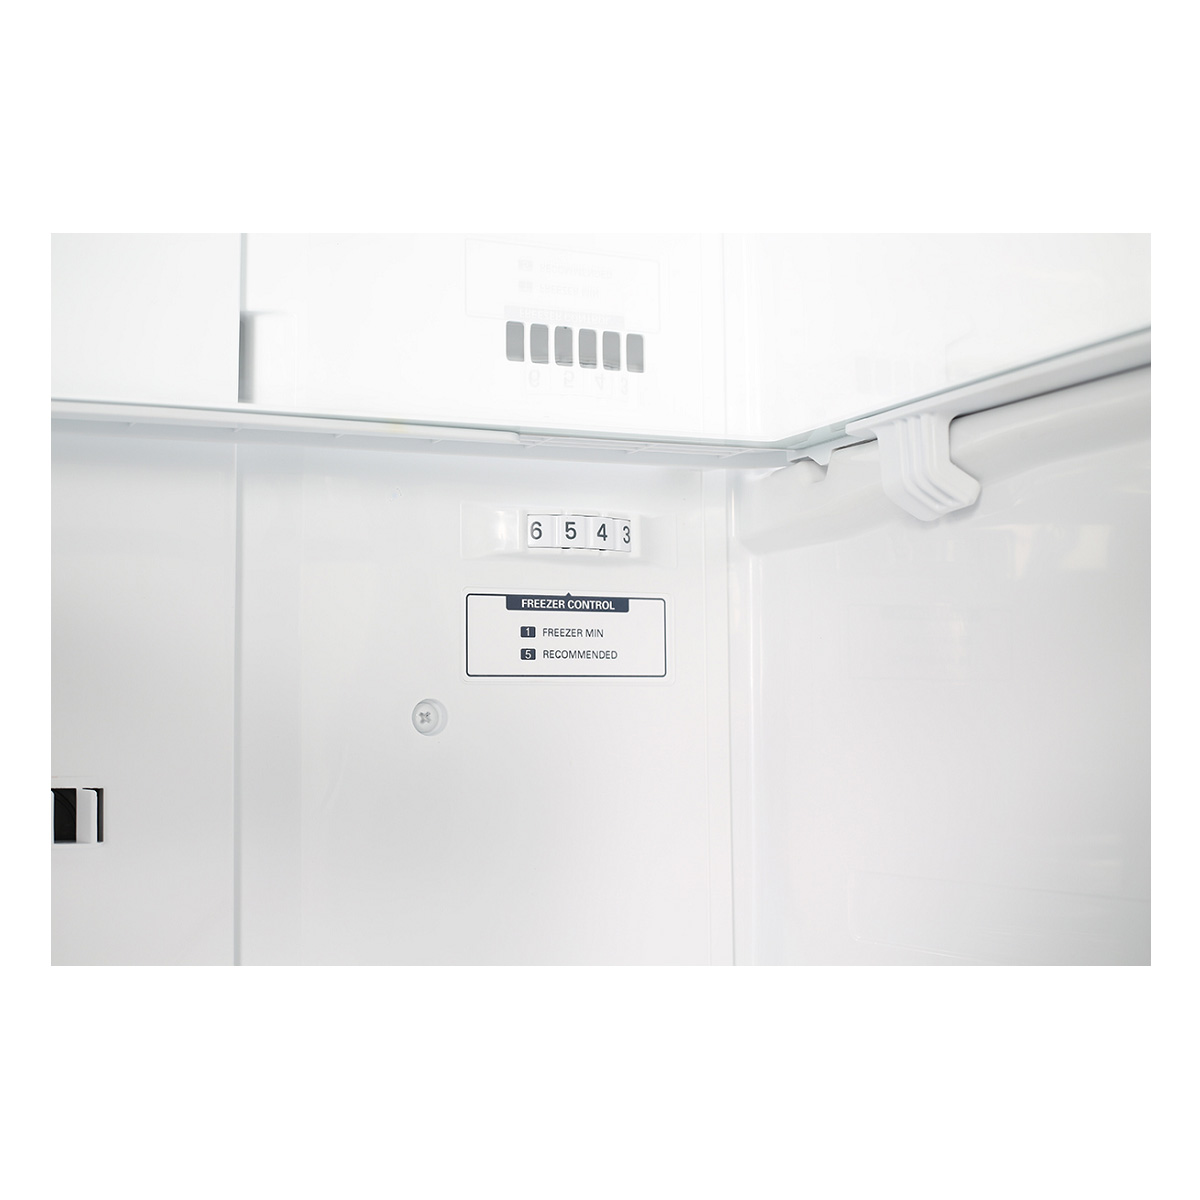 LG GT-515BPL 515L Top Mount Fridge 35594